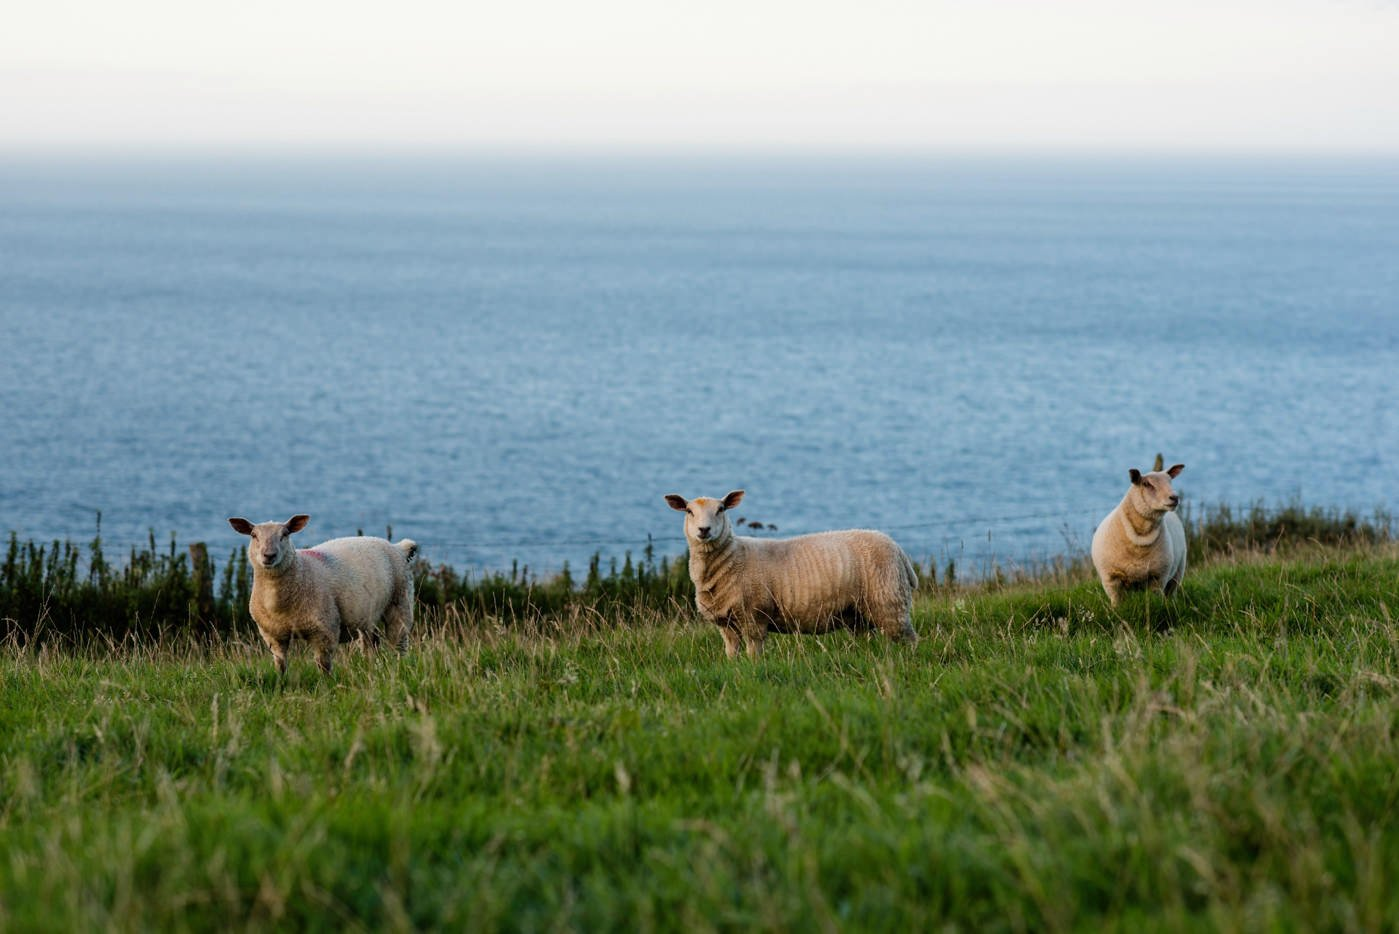 Sheep in Donegal